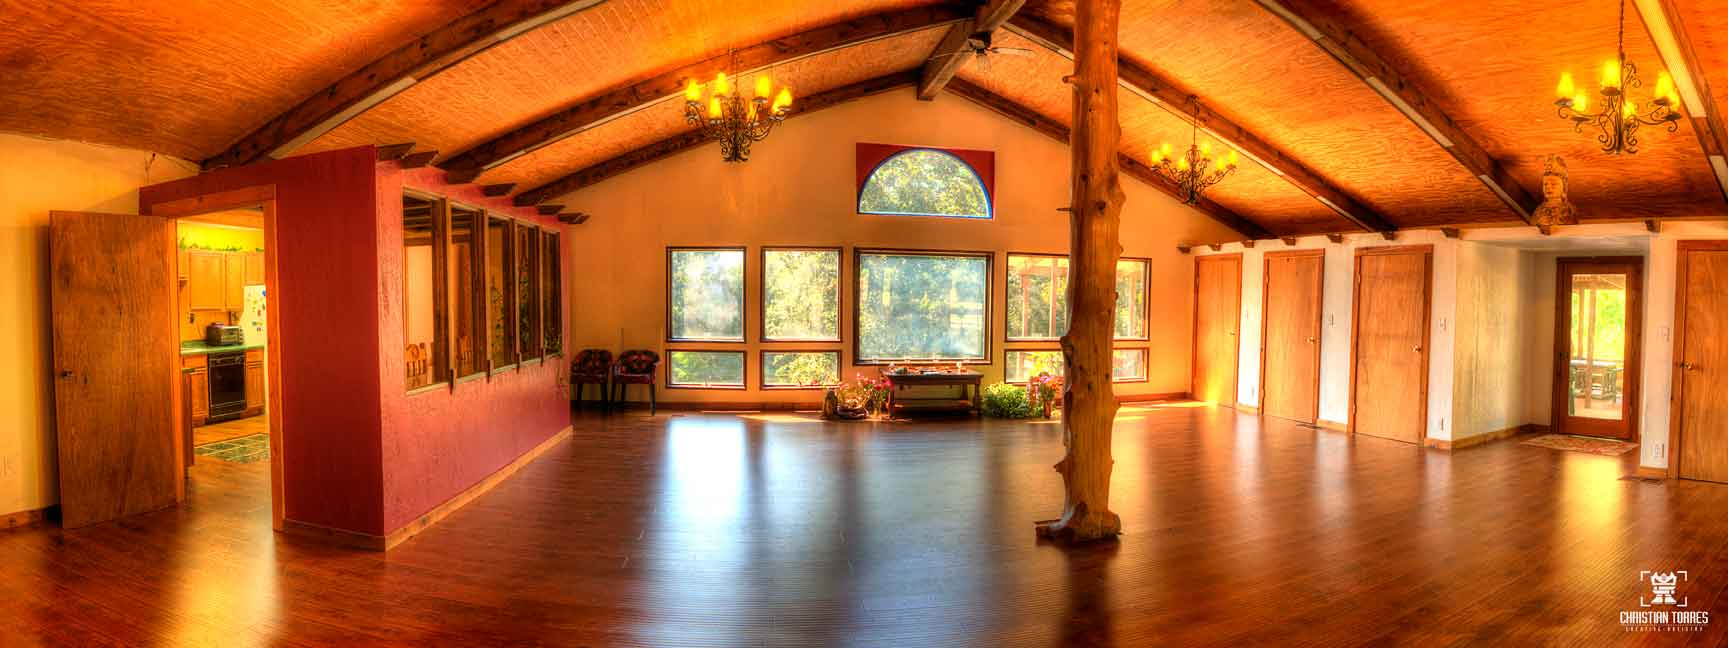 The Great Room provides room for yoga, indoor camping on air mattresses, & discourse area during Samadhi Silent Retreats